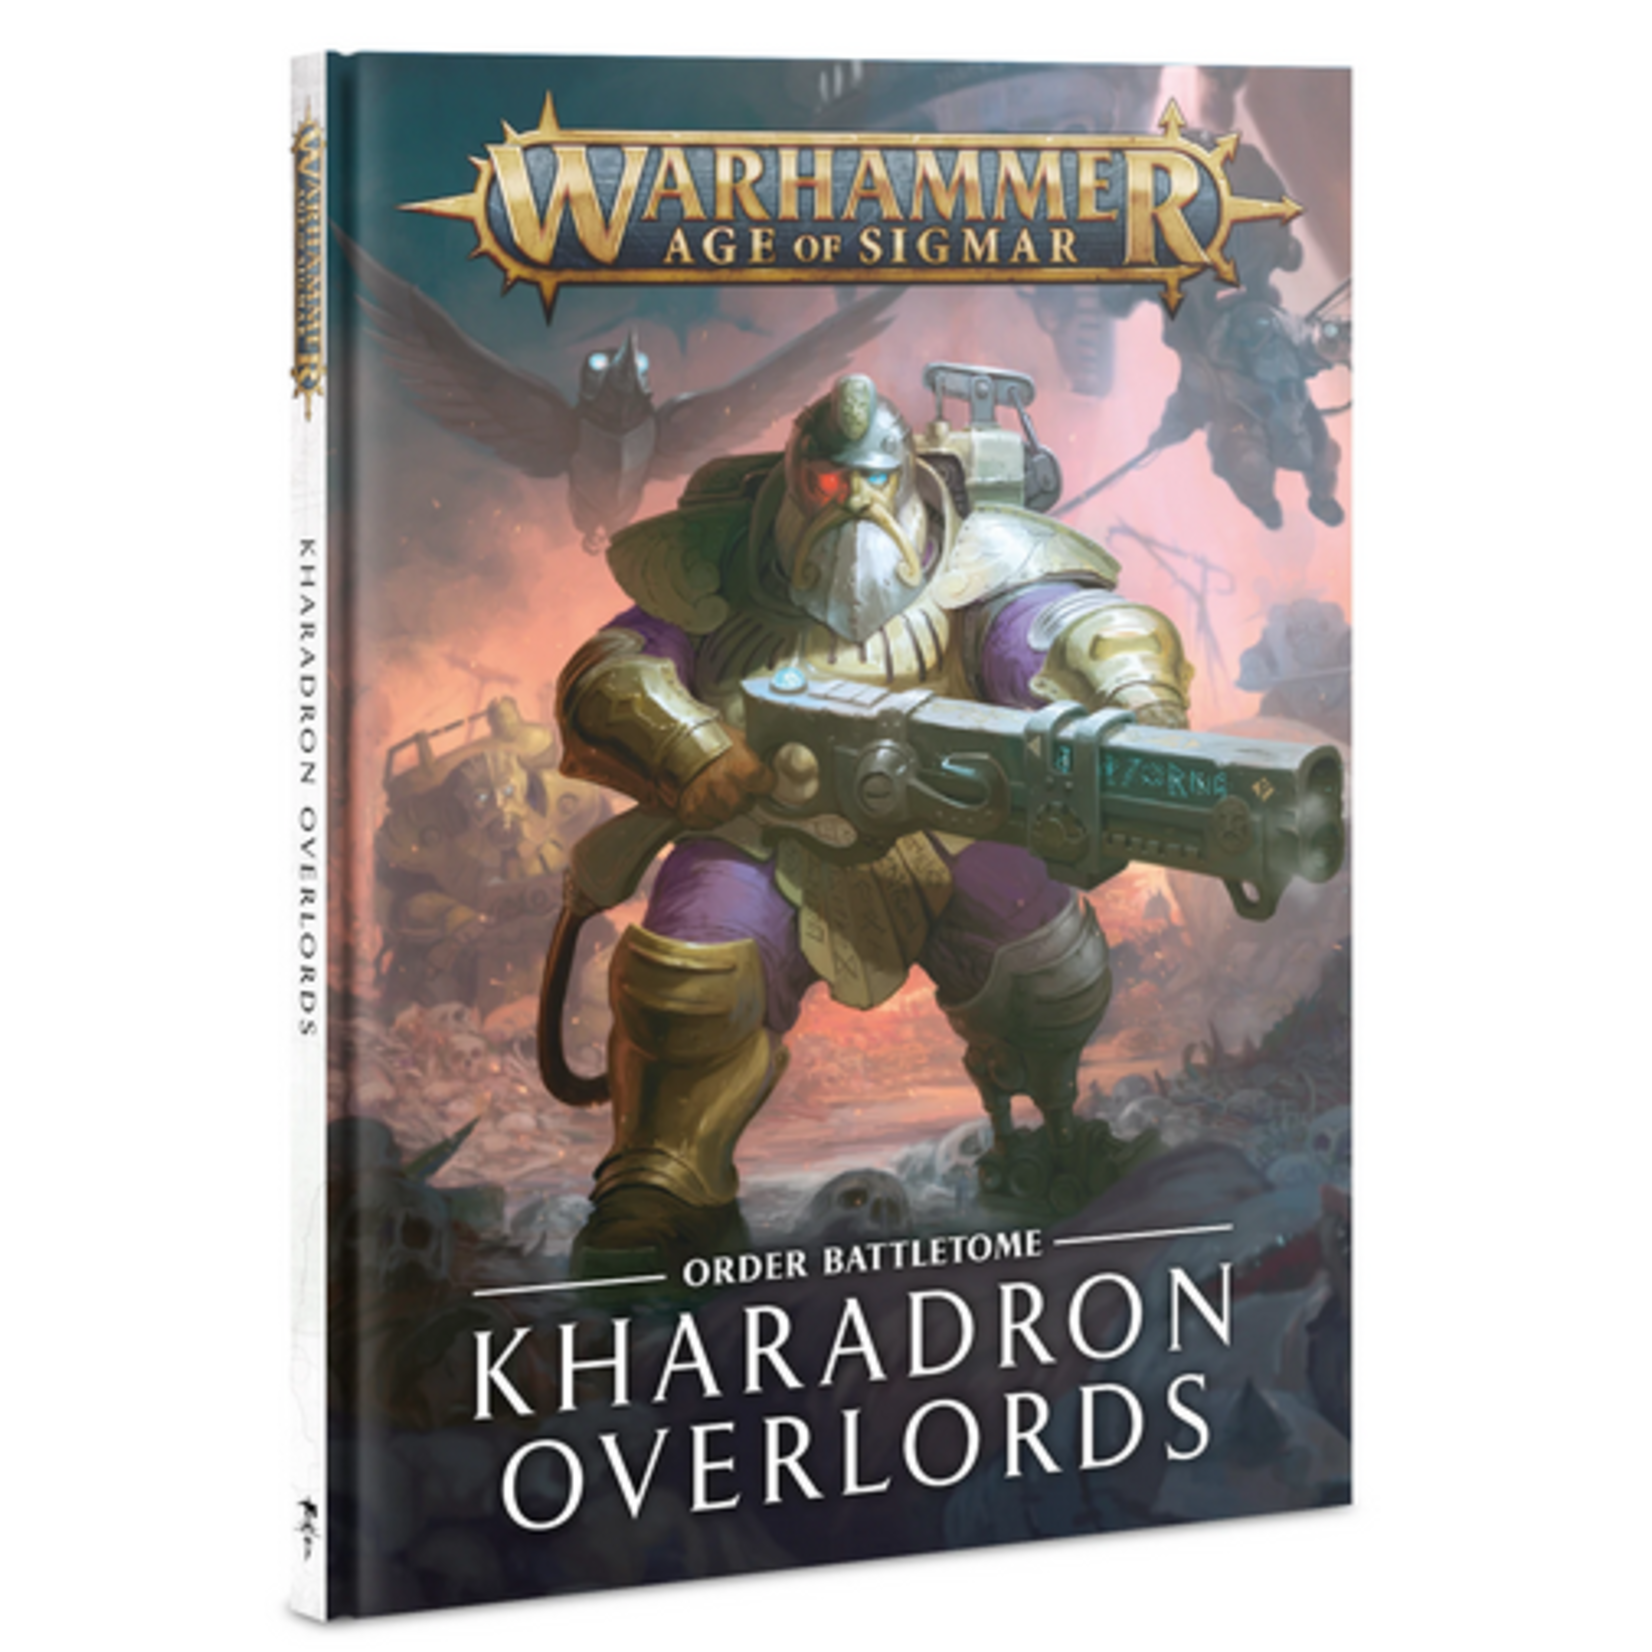 Kharadron Overlords Battletome (HB) (AOS)